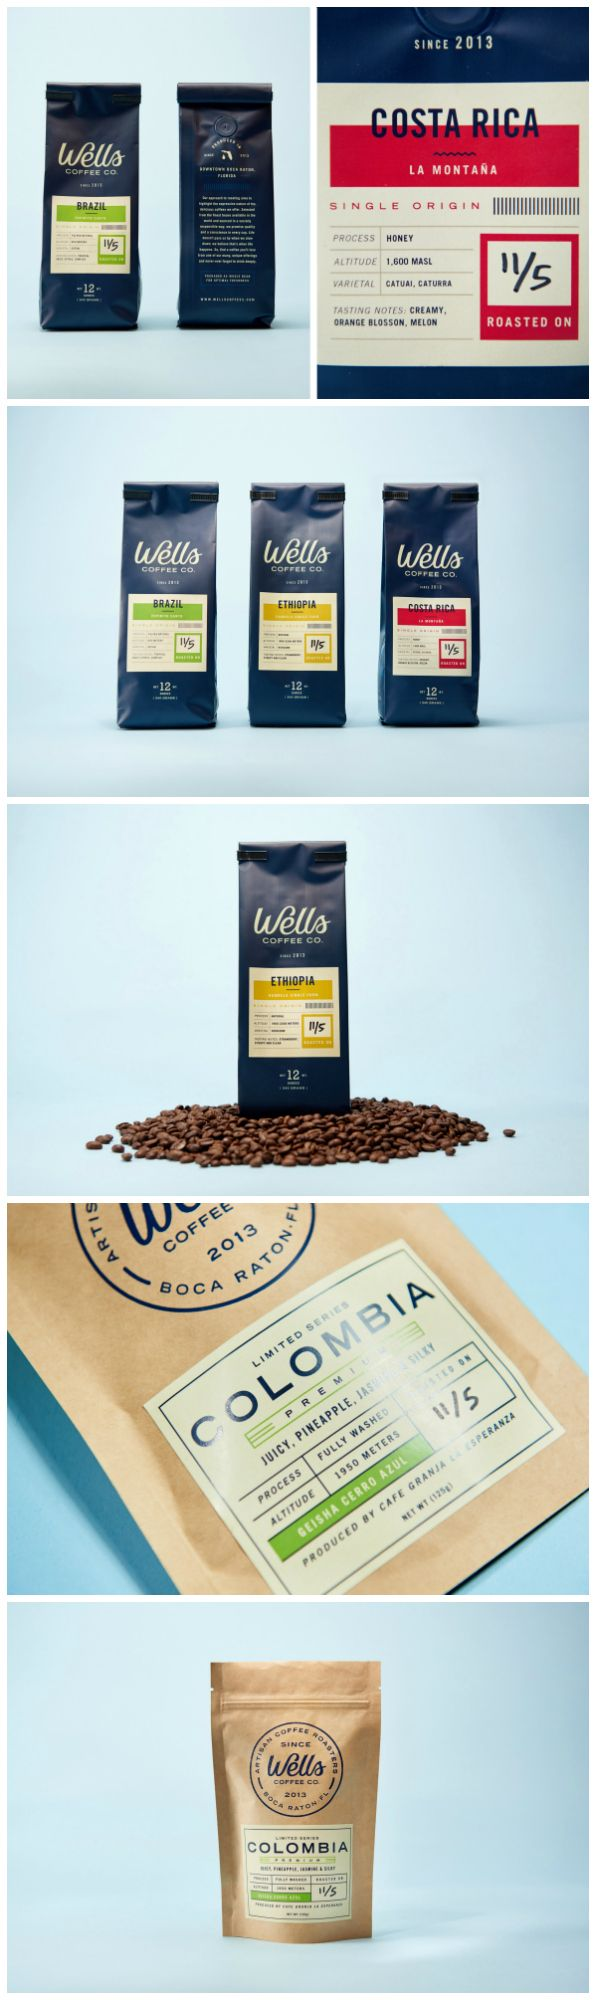 Authentic Design Refresh for Florida's Wells Coffee Co. Overall Branding and Packaging Design Agency: Steve Wolf Designs ​​​​​​​Project Name: Wells Coffee Co. Category: #coffee #drink